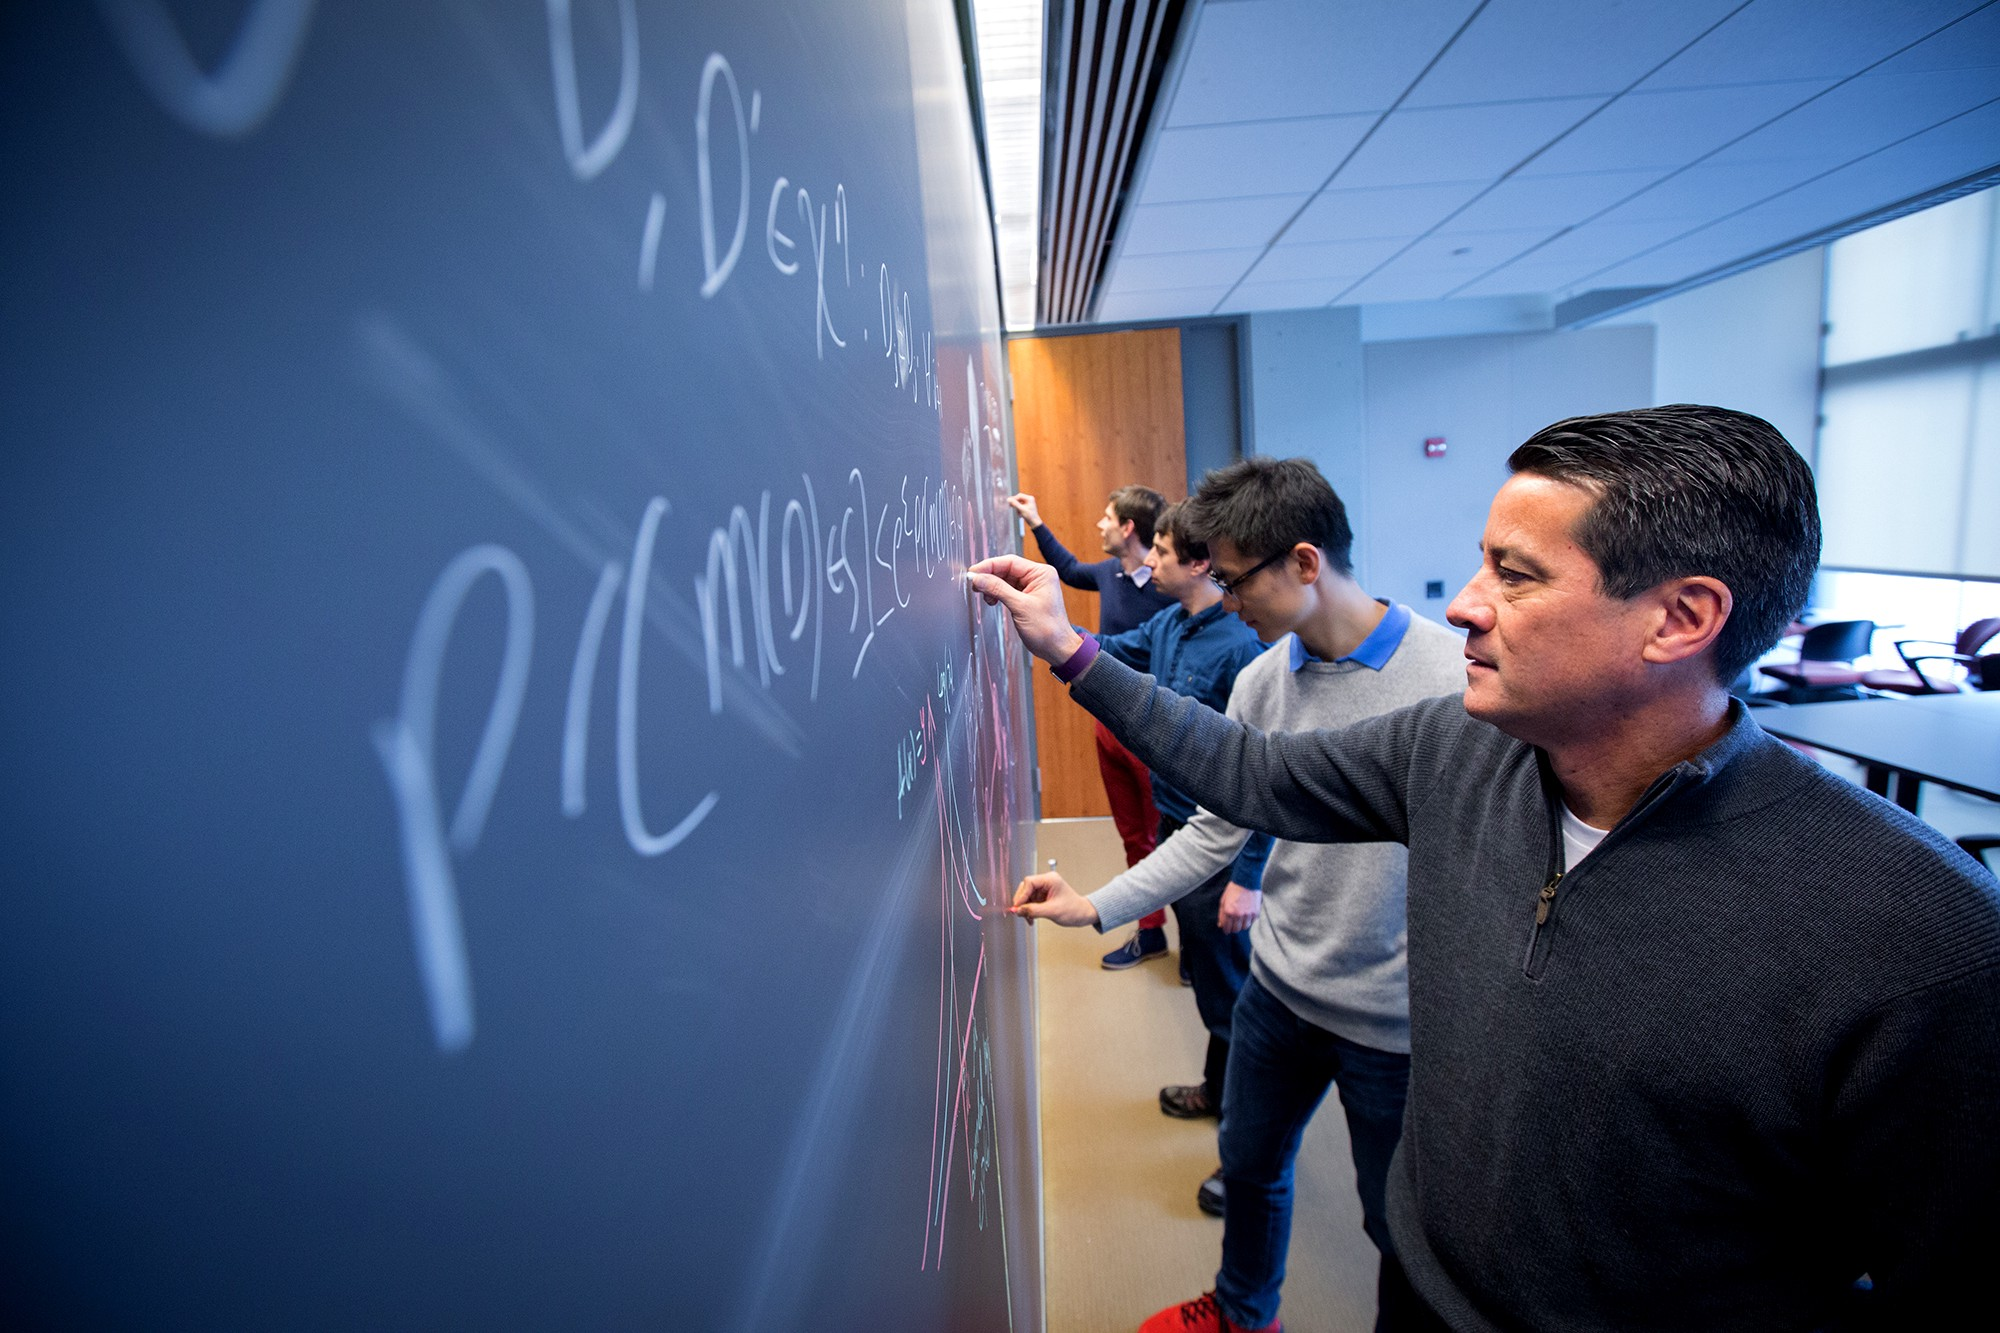 Four researchers write equations on a chalkboard.